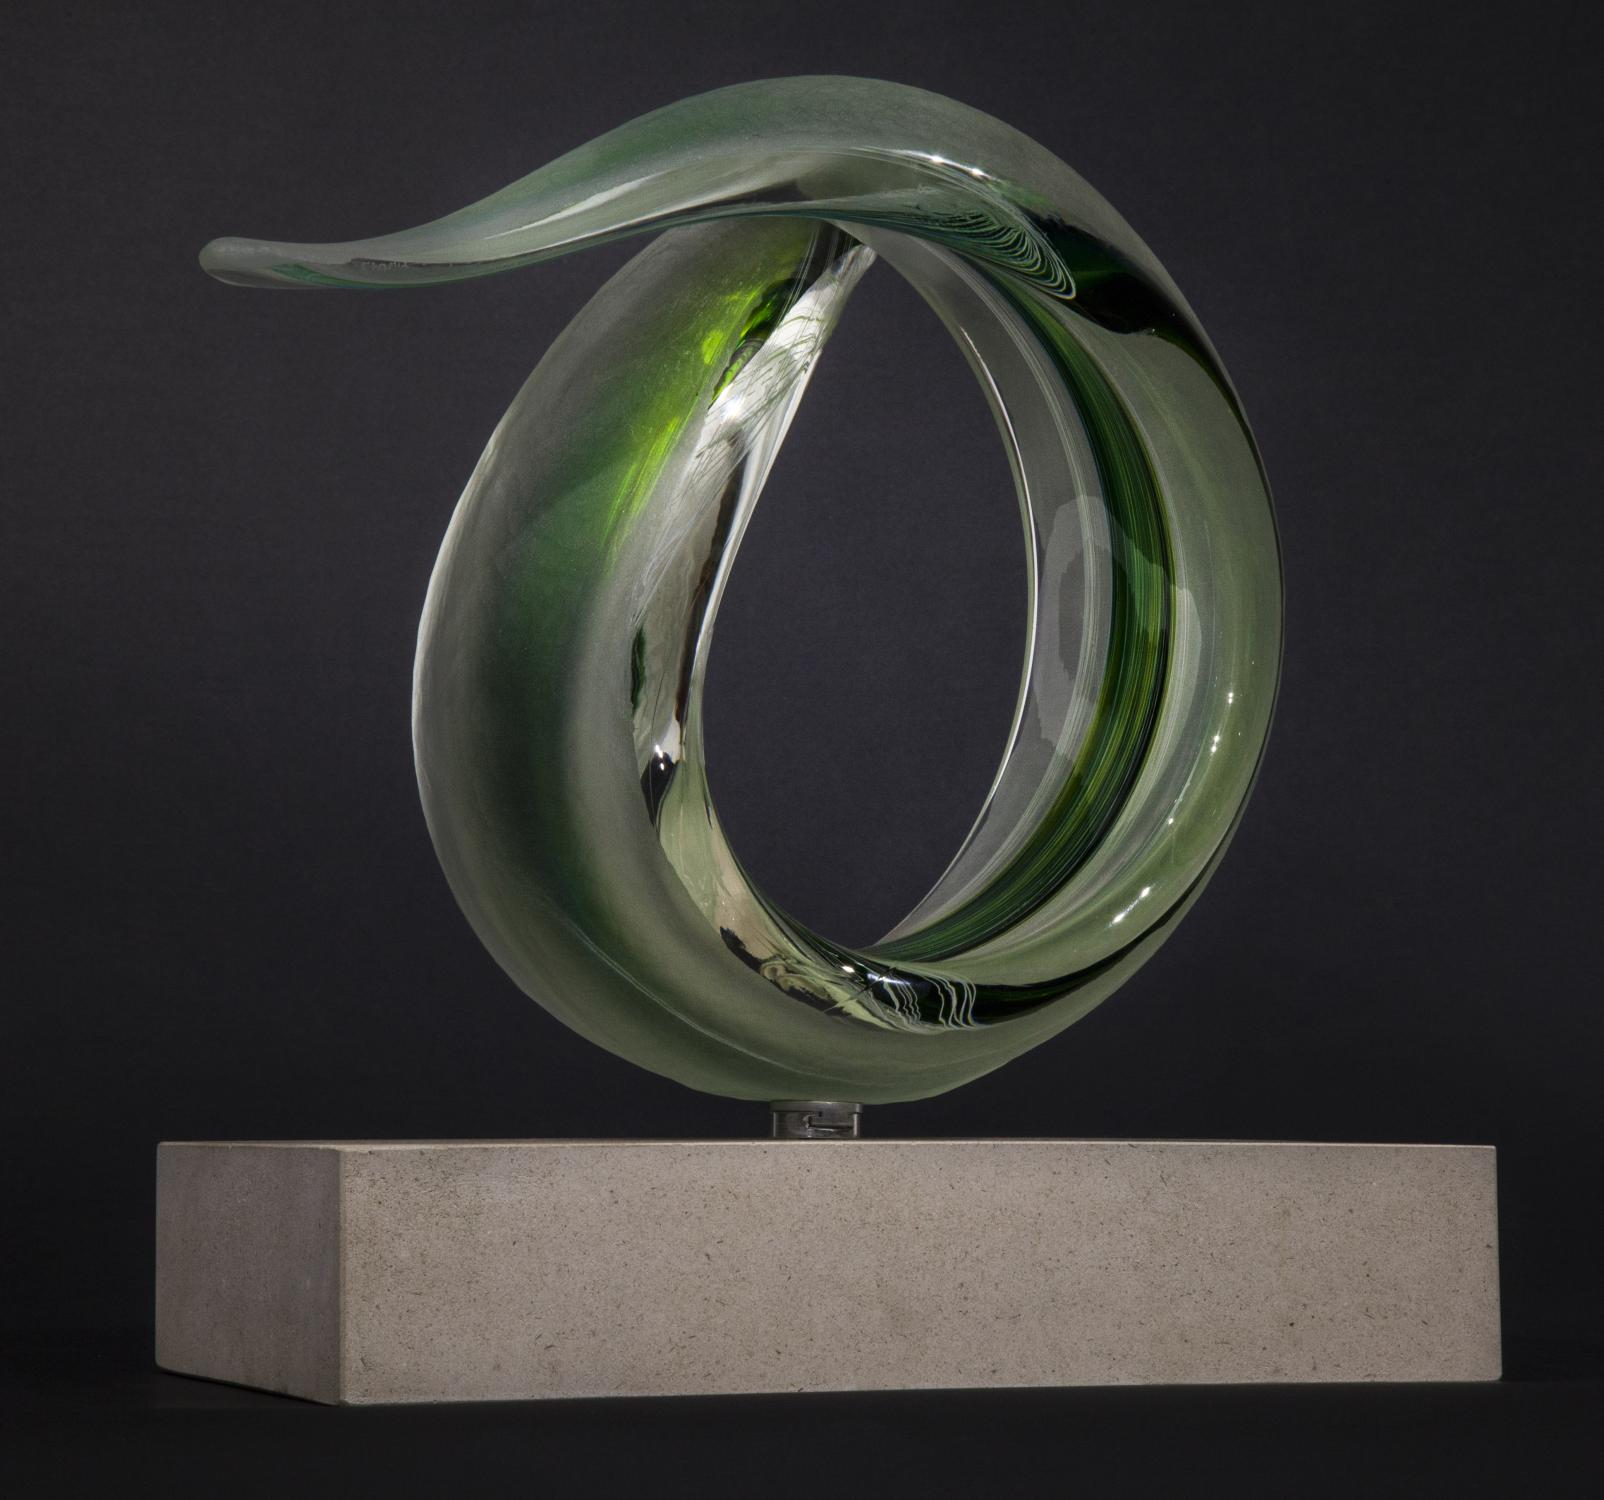 Lot 18 - Sculpture: Charlie MacPherson, Green Spiral, Glass on limestone base, Signed, Unique, 36cm high by